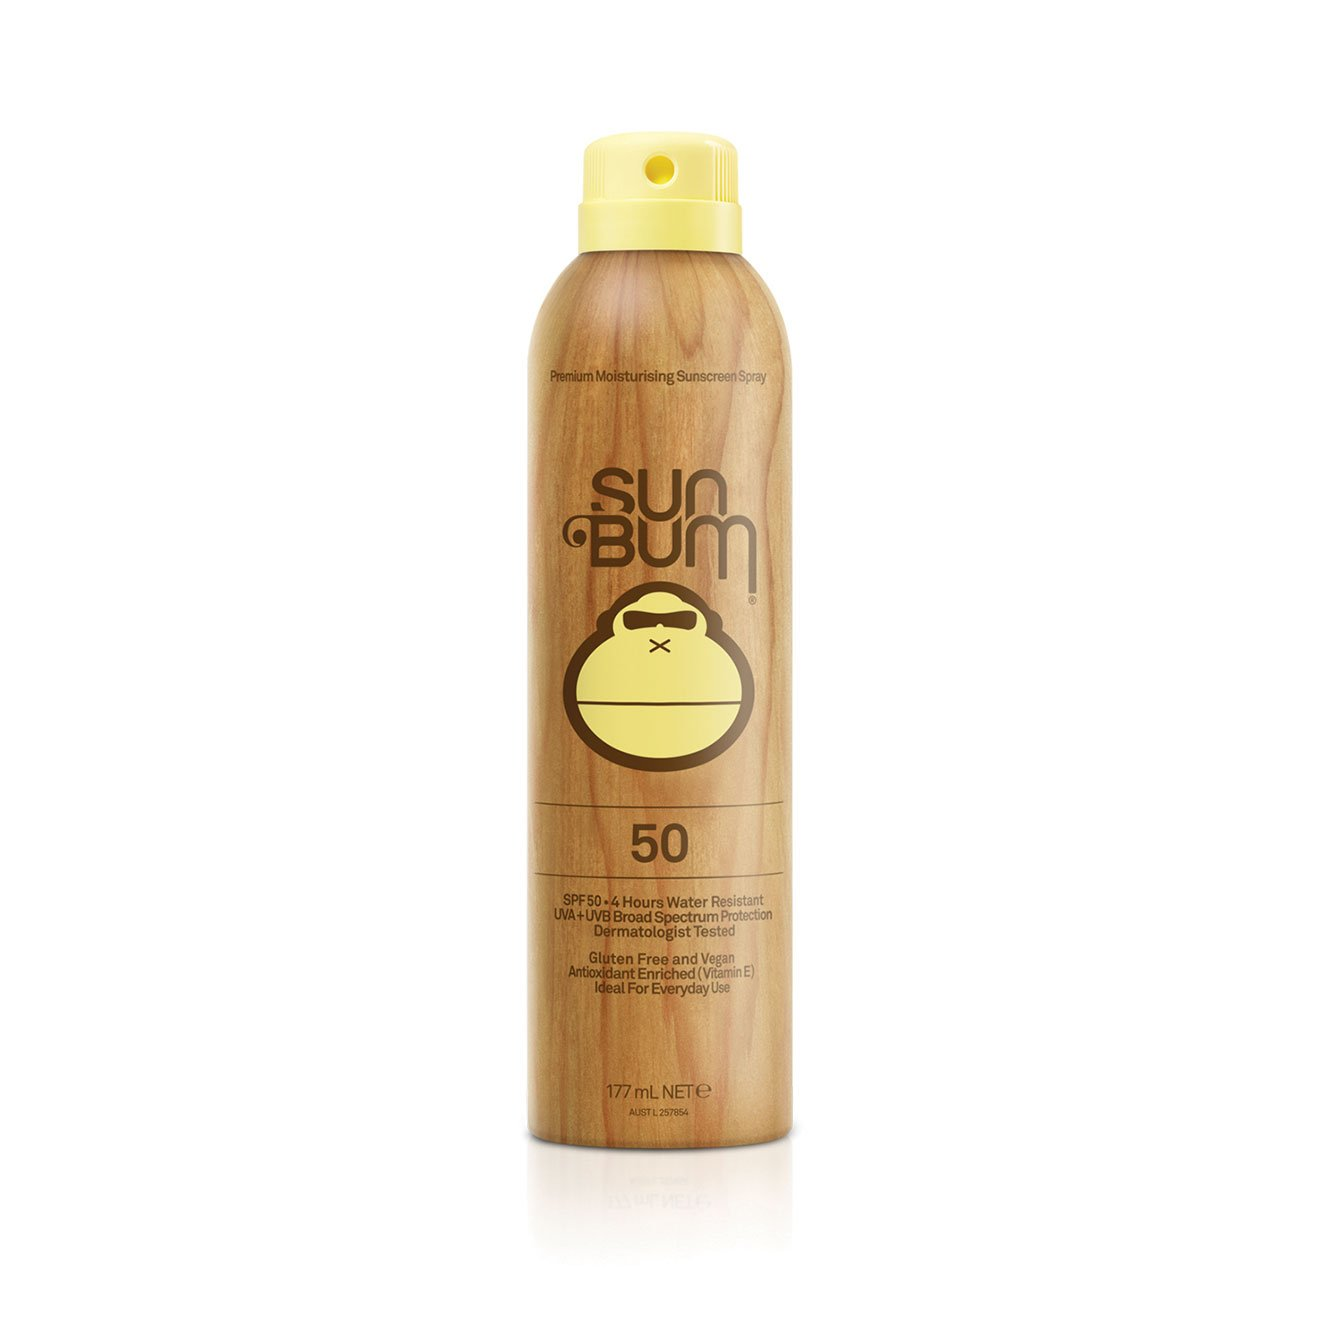 Sun Bum Original SPF 50 Spray 177ml